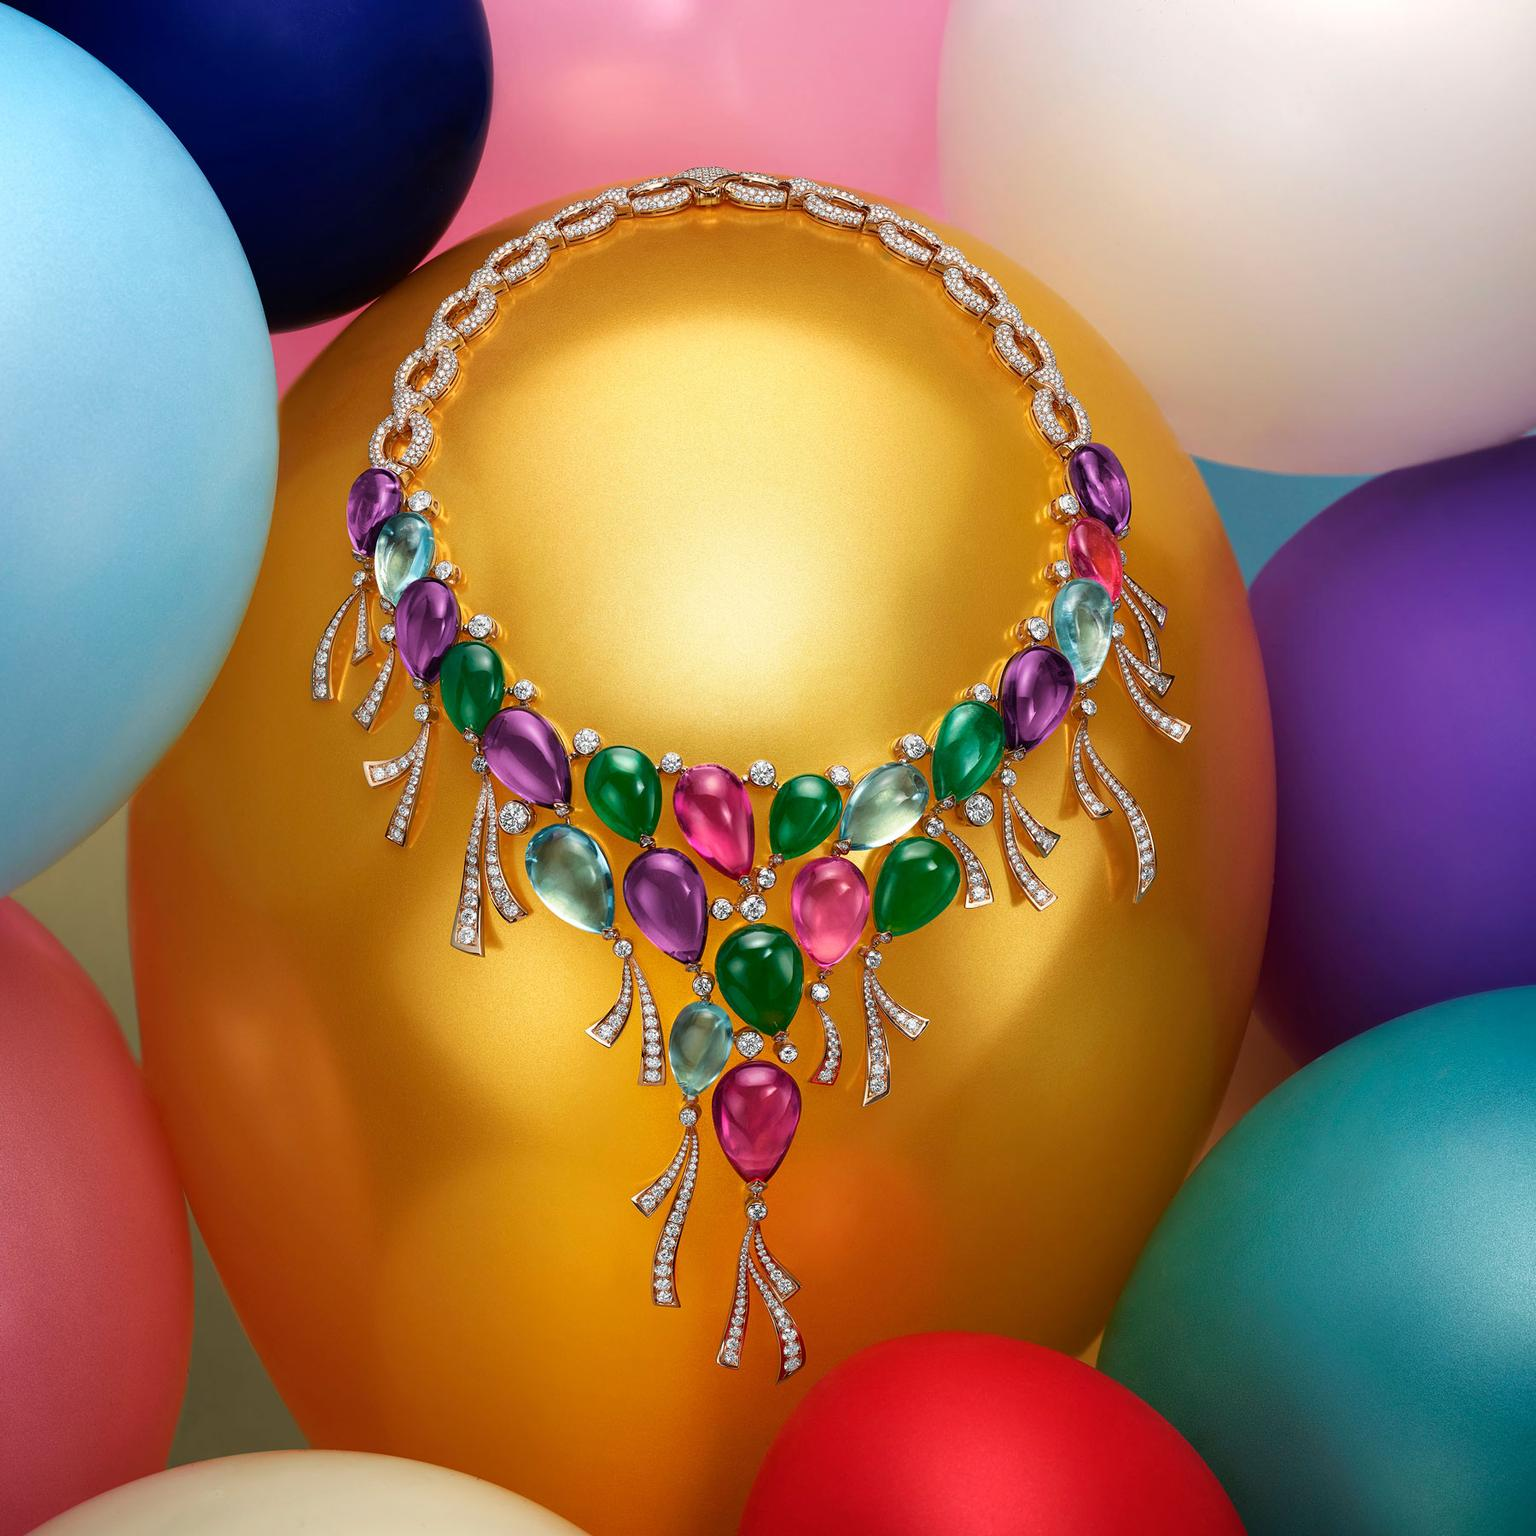 Bulgari Festa Palloncini balloon high jewellery necklace